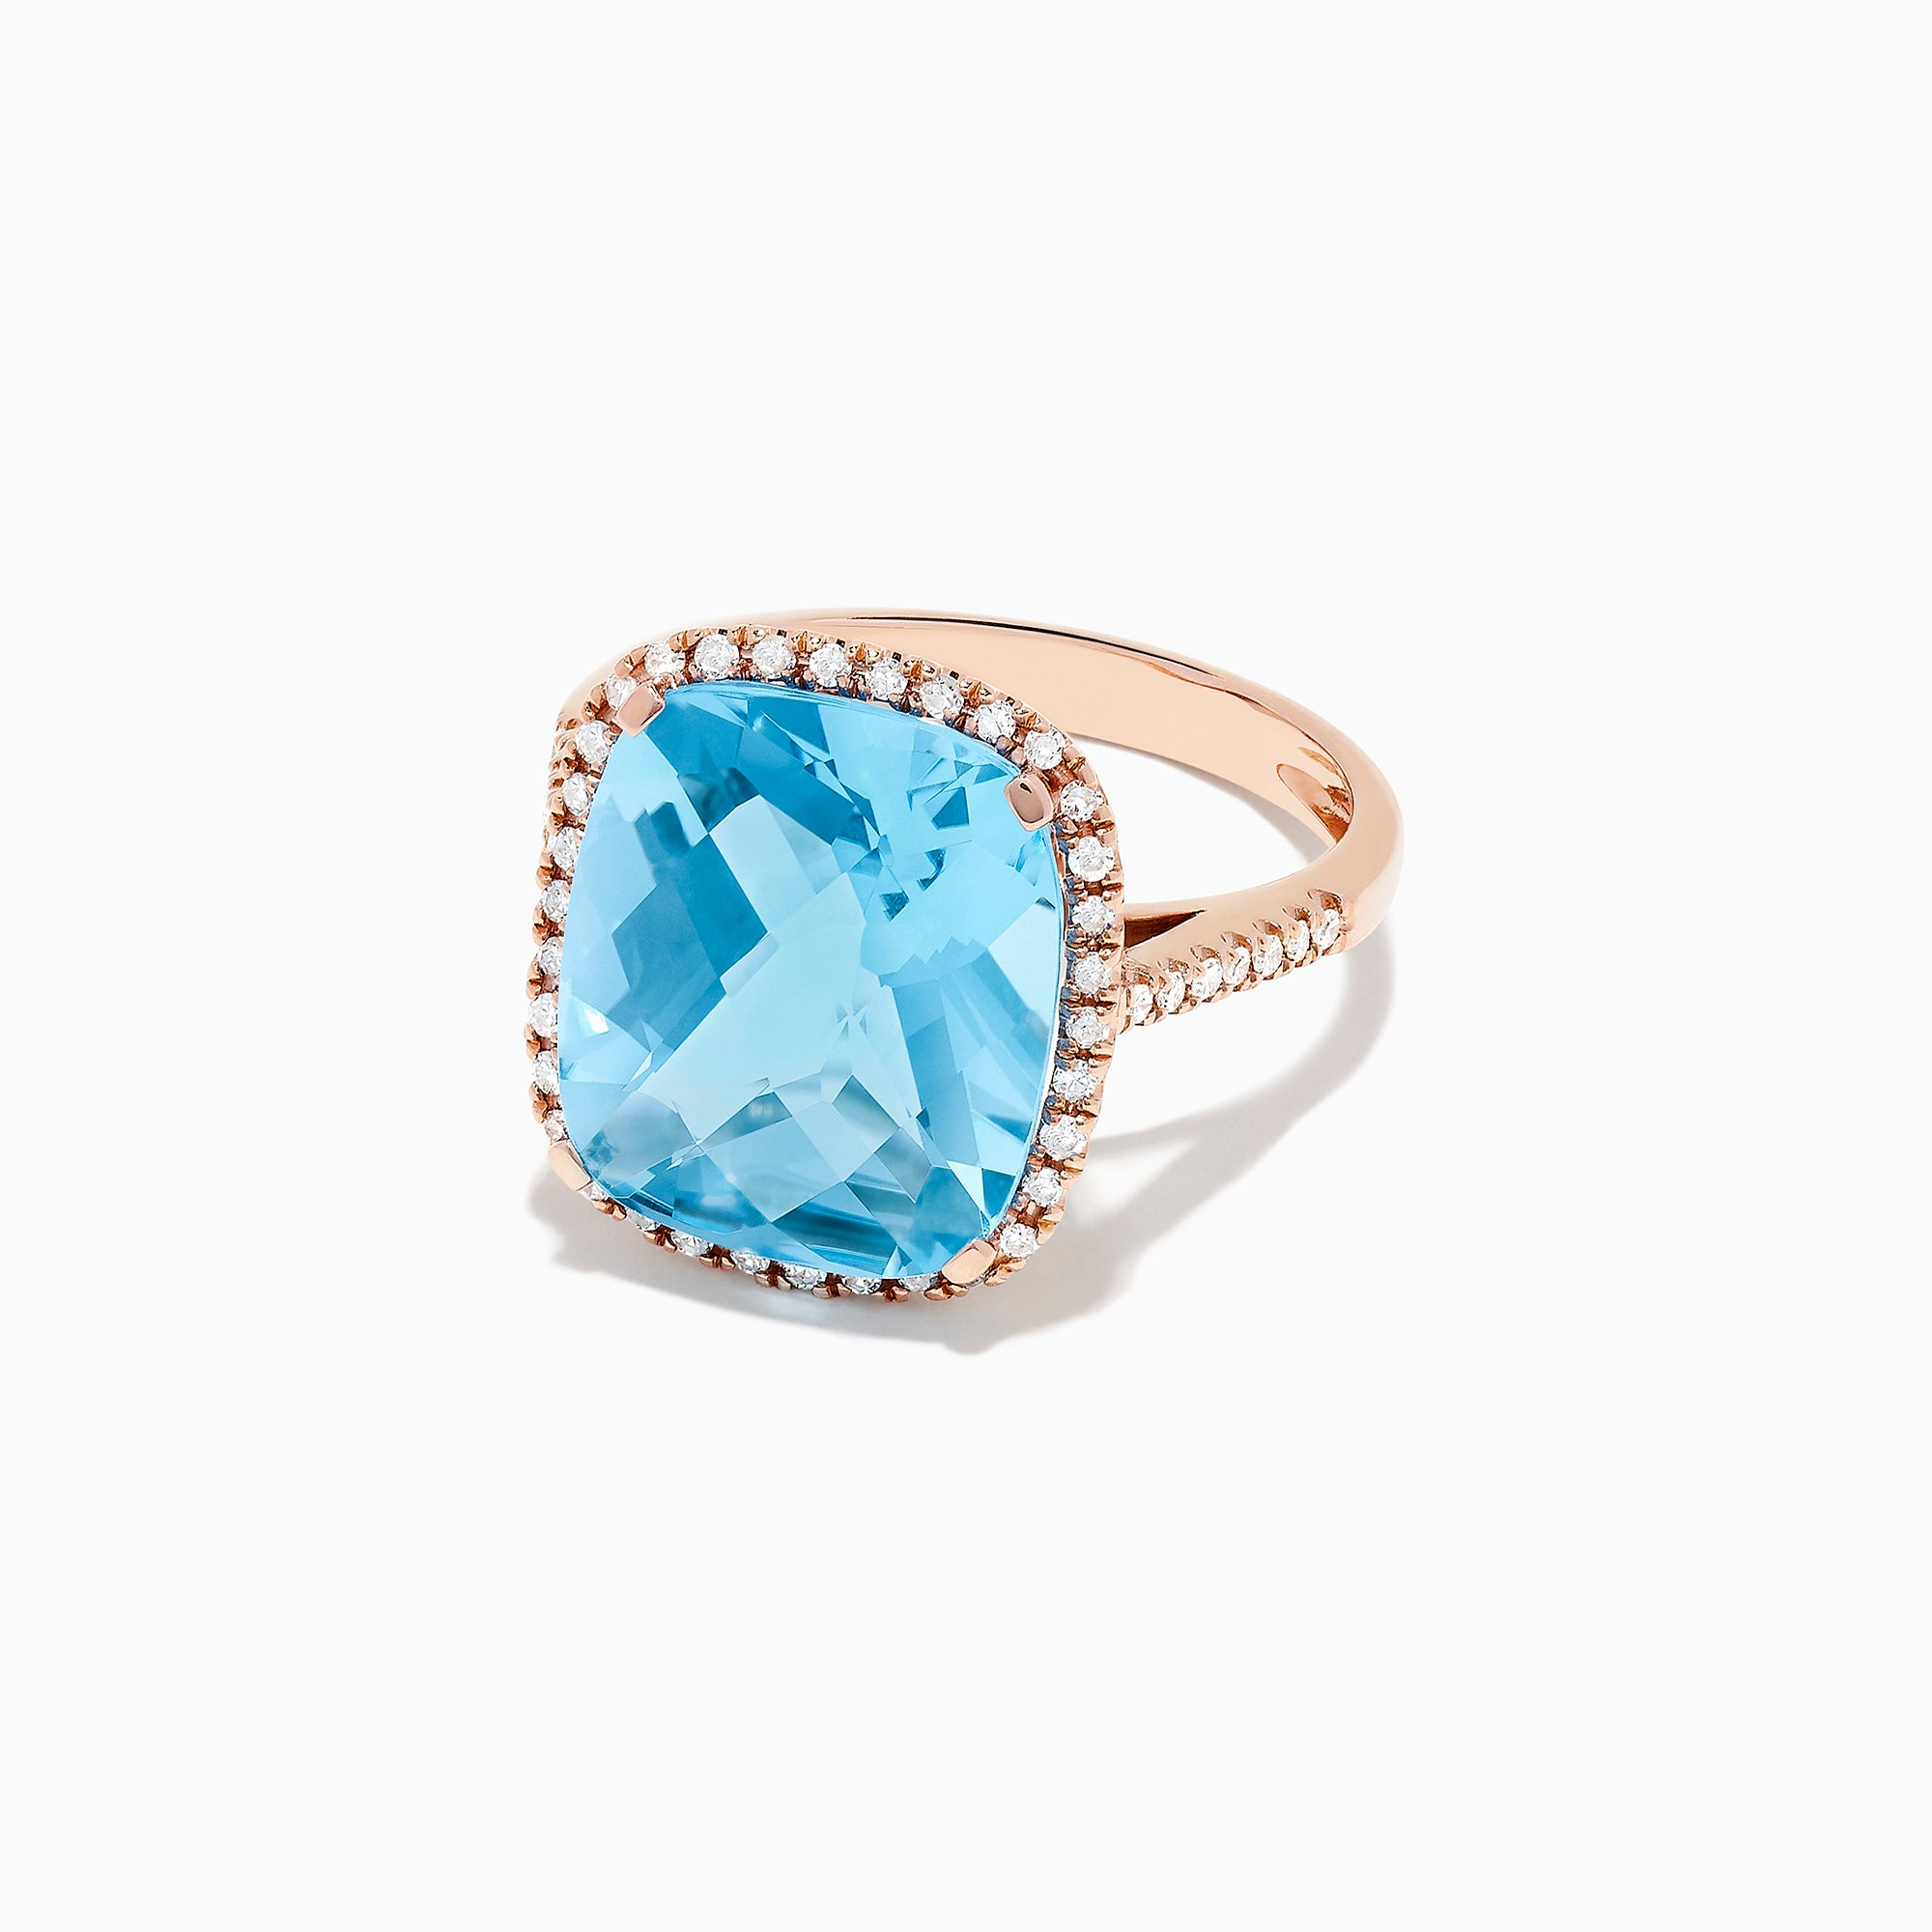 Effy 14K Rose Gold Blue Topaz and Diamond Cocktail Ring, 11.74 TCW